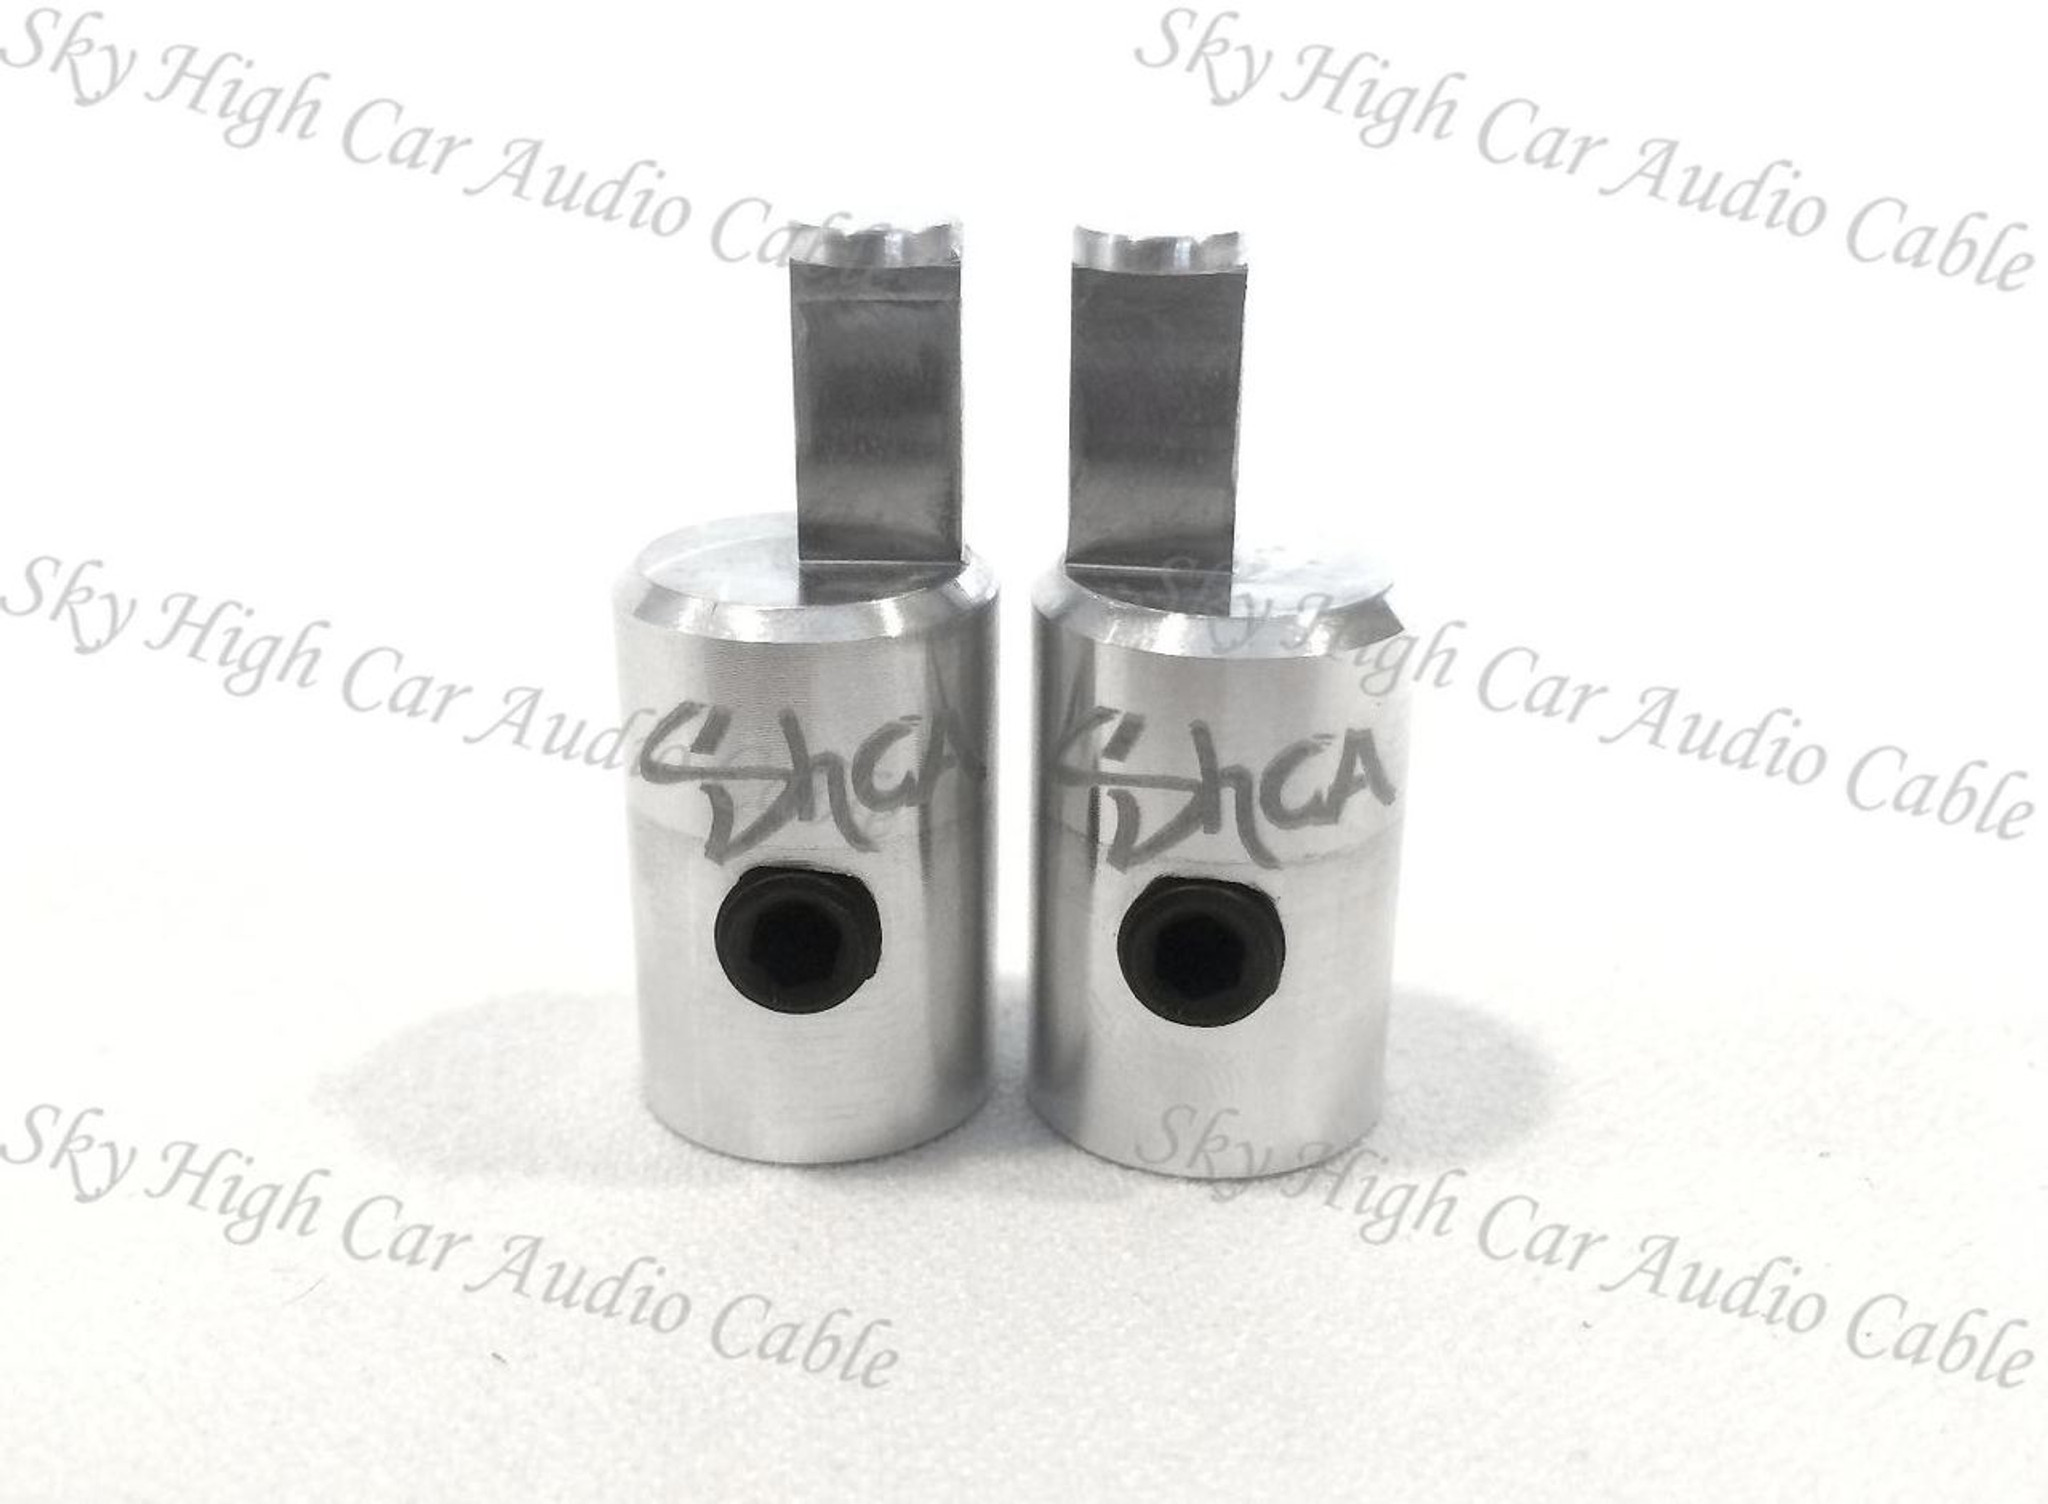 Pair Of Dual 8 Gauge to Single 8 Gauge Amplifier Speaker Inputs